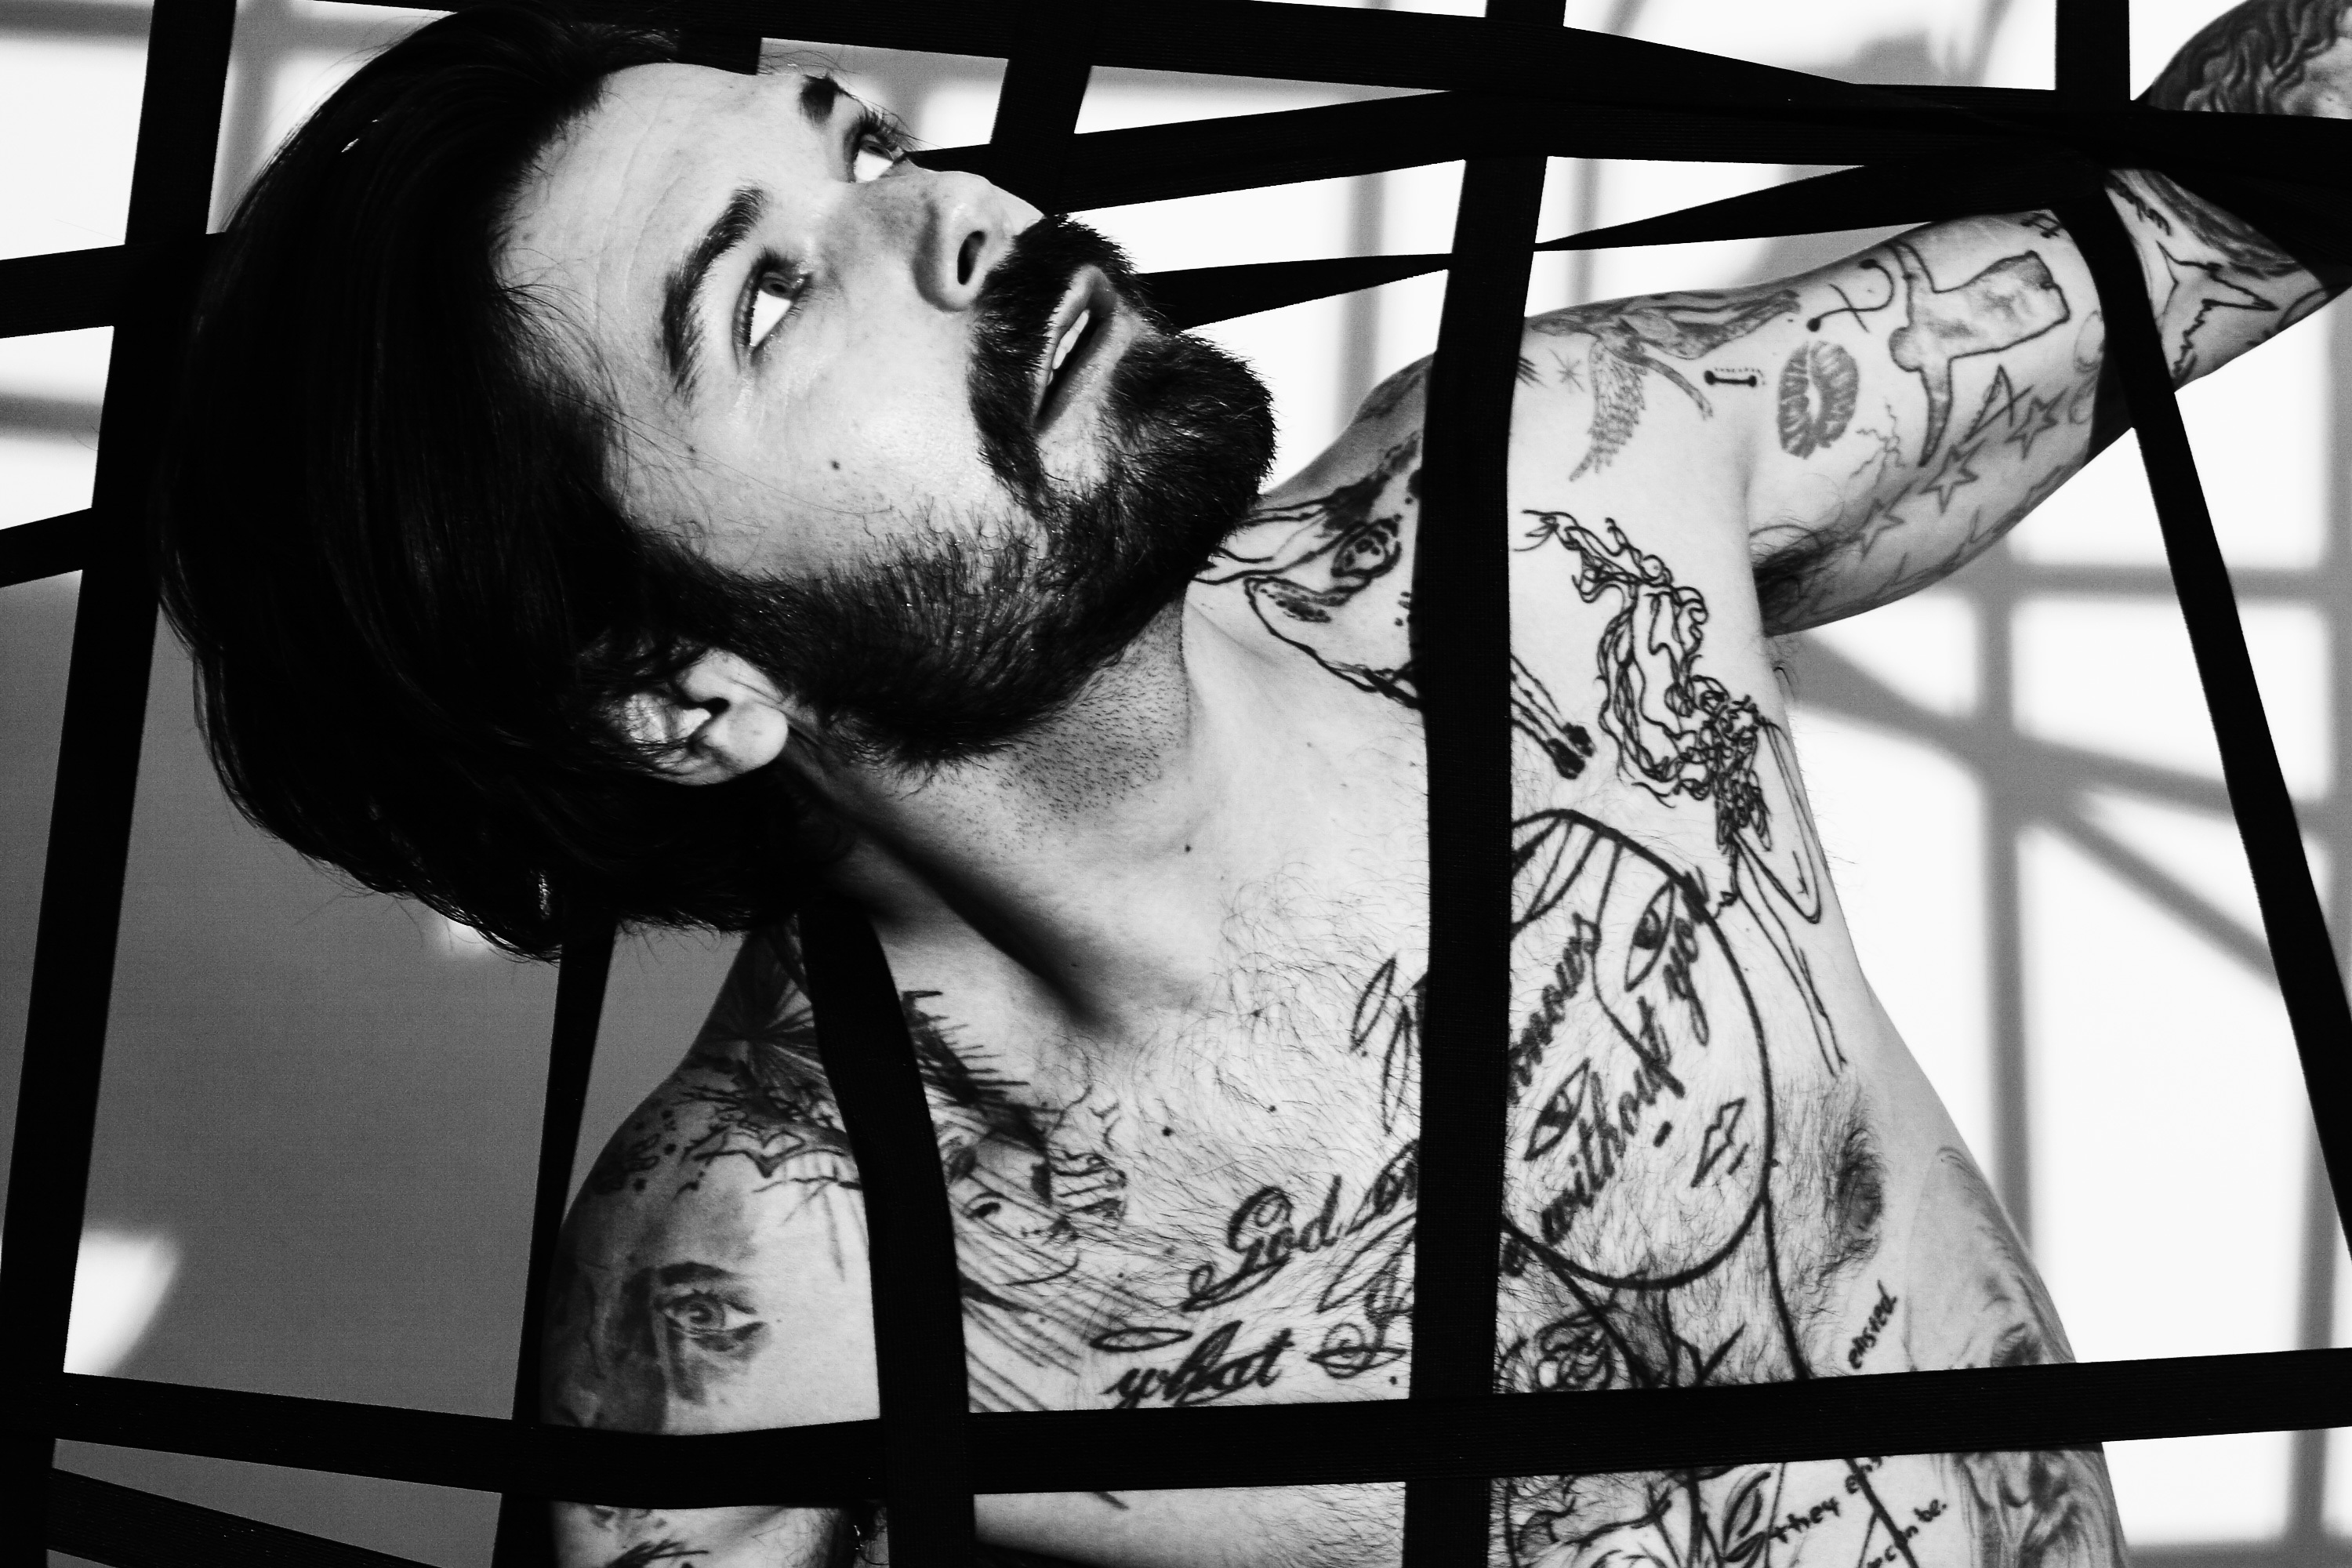 Biffy Clyro: Holding Out For A Change